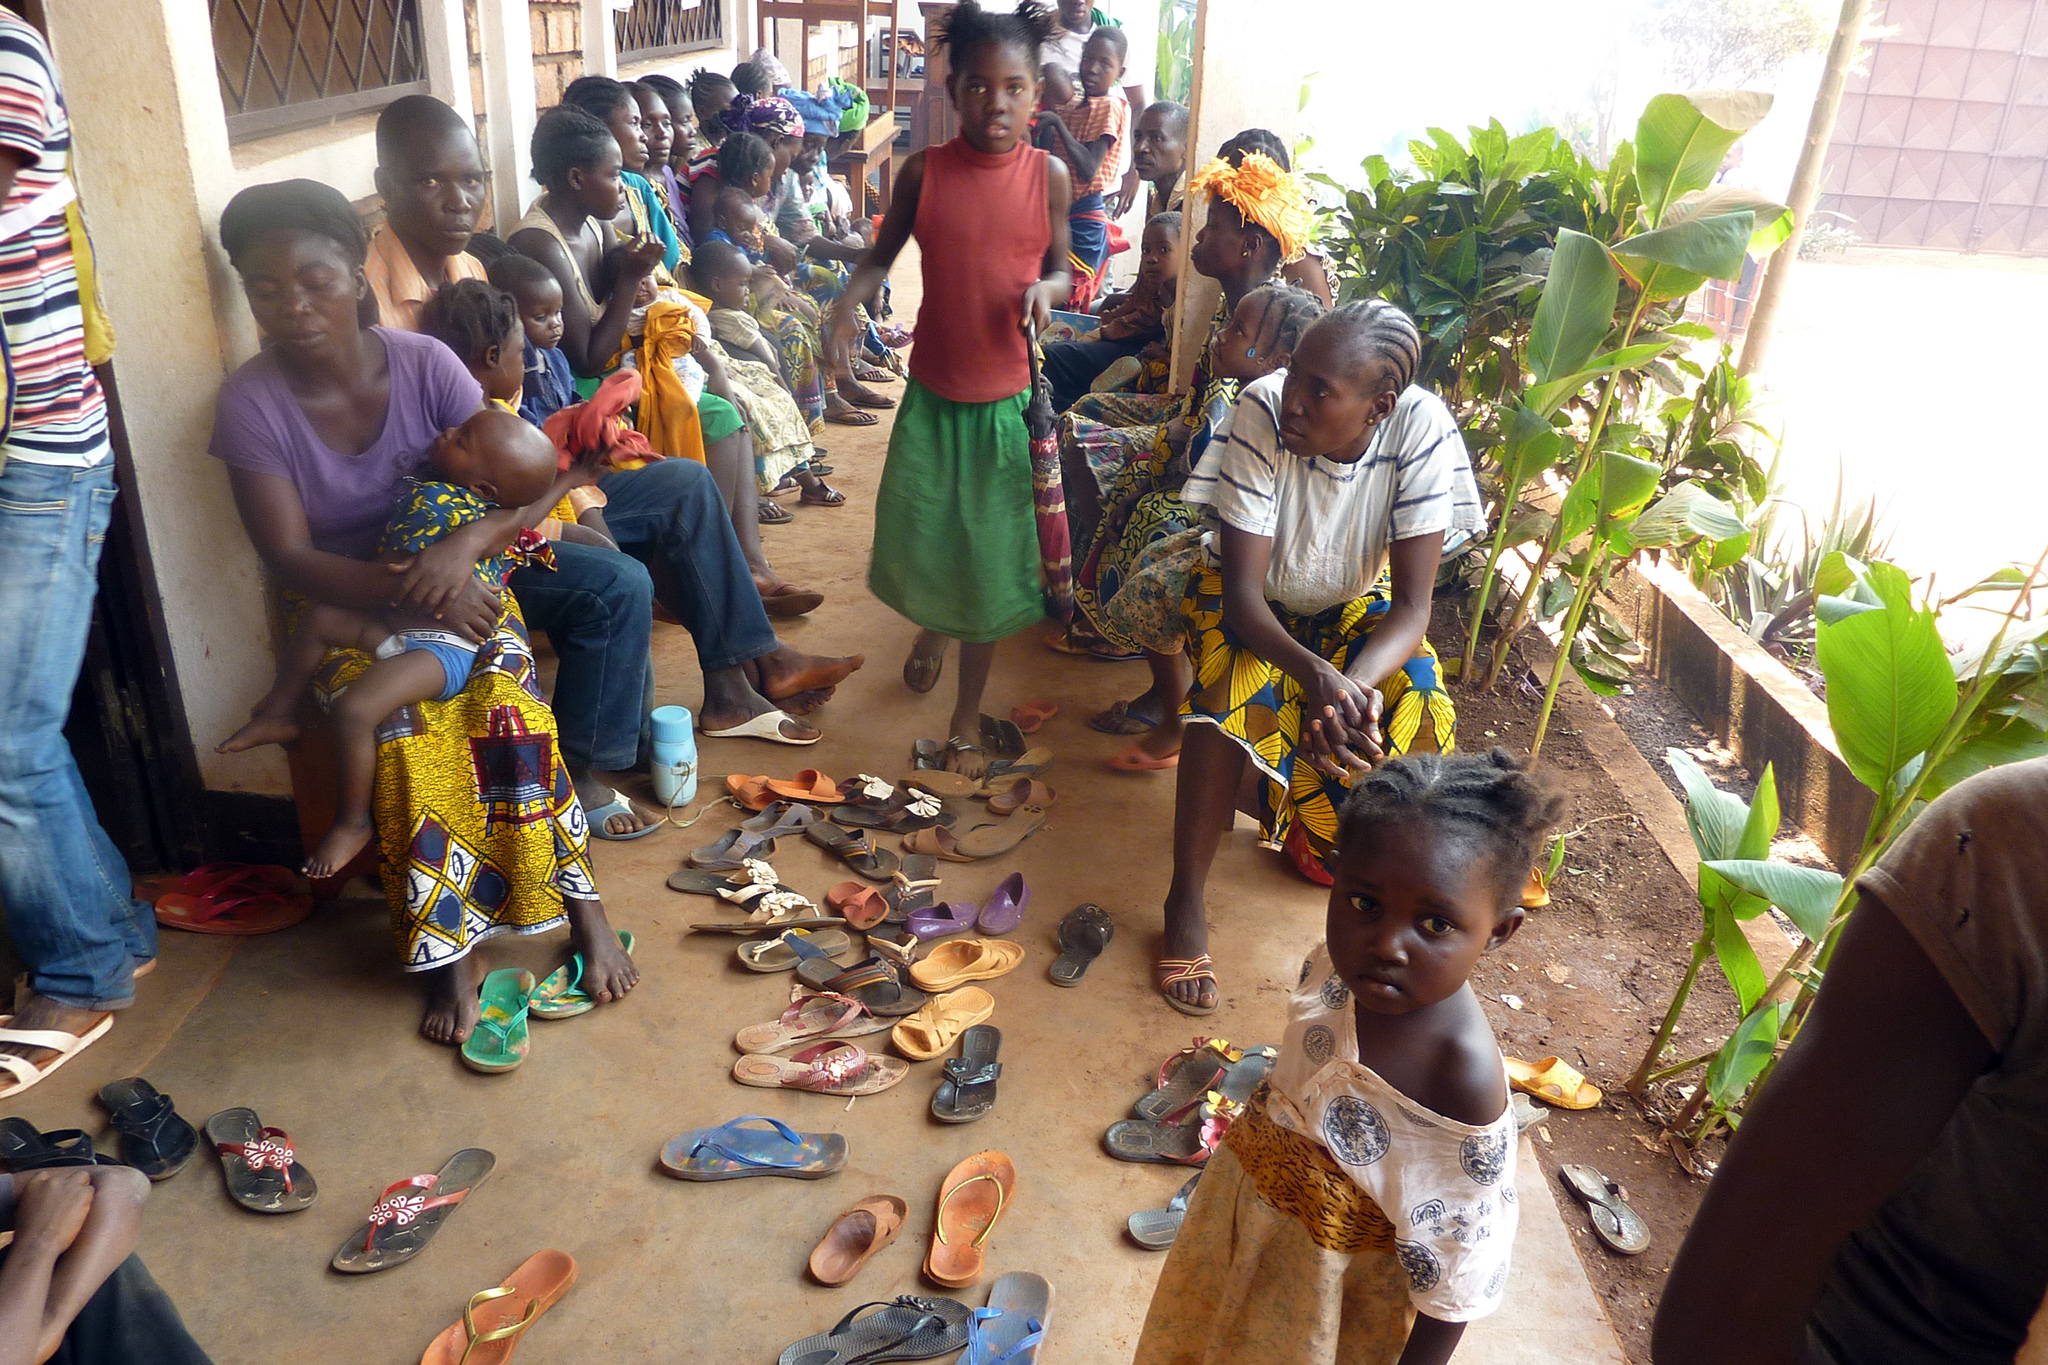 Central African Republic, Bangui: Refugee Camp on the compound of the Carmelite Monastery